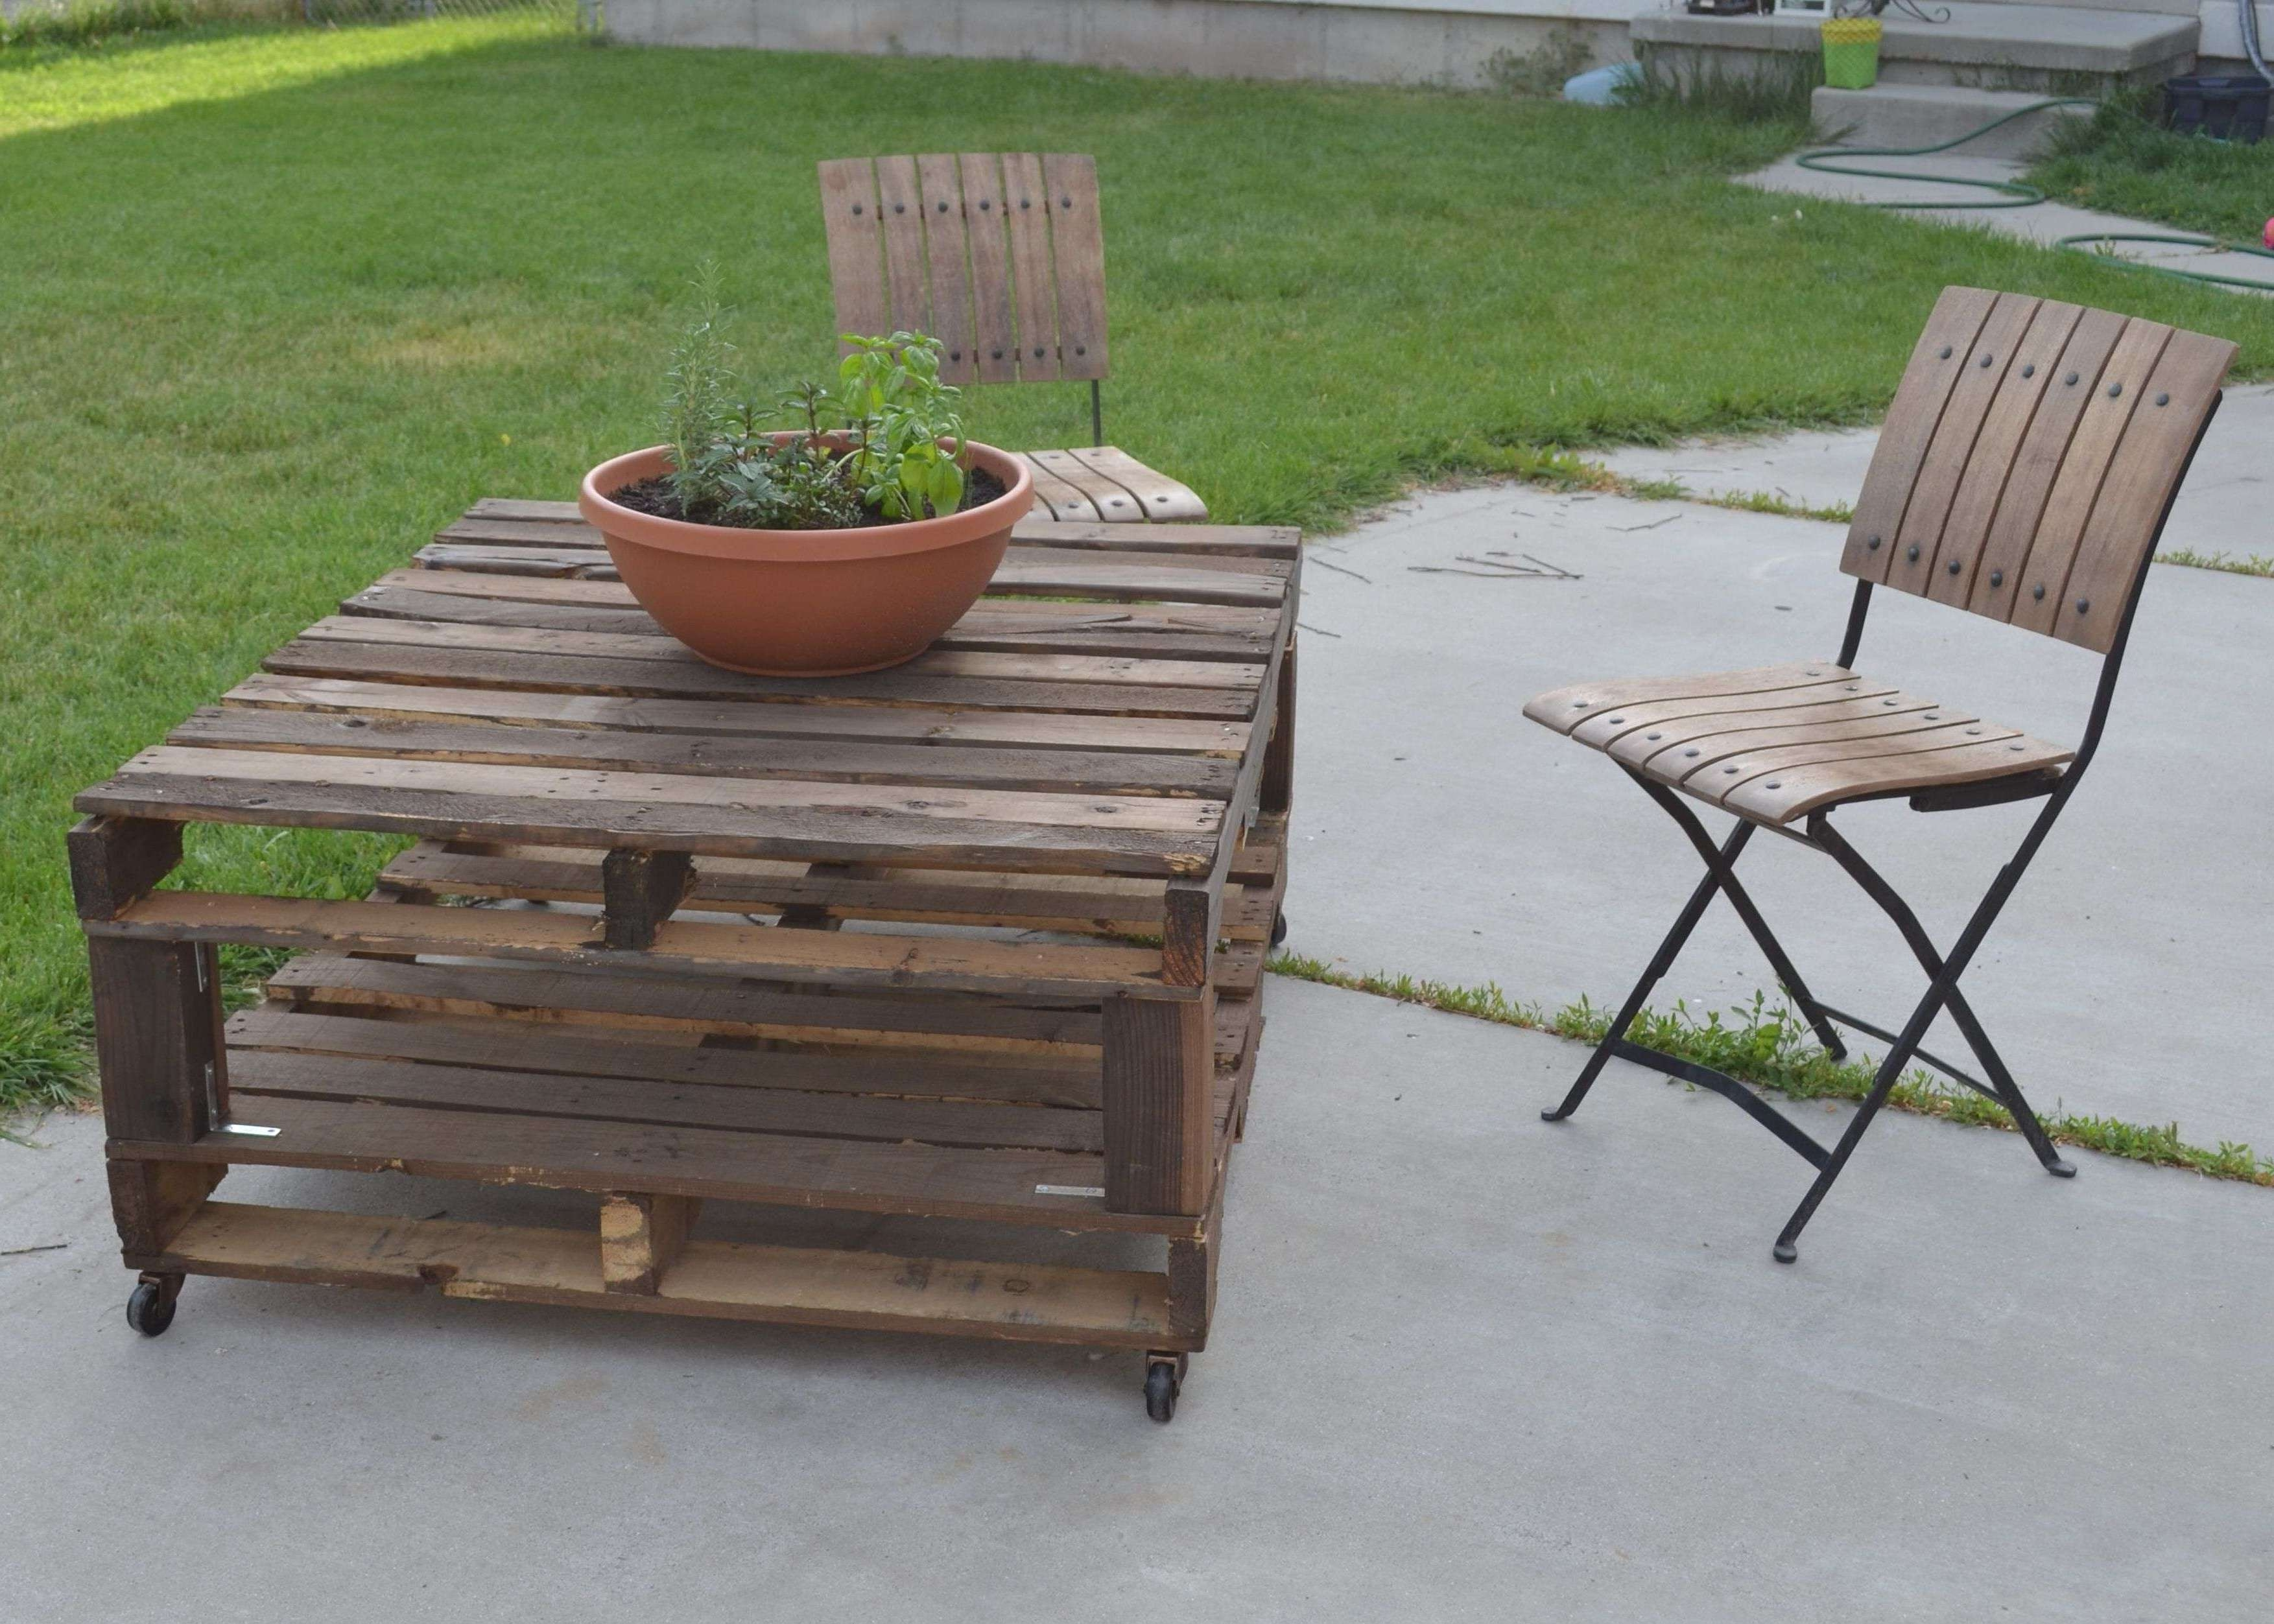 Diy Outdoor Wood Coffee Table Using Reclaimed Wood And Wheels With With Recent Low Coffee Table With Storage (View 16 of 20)